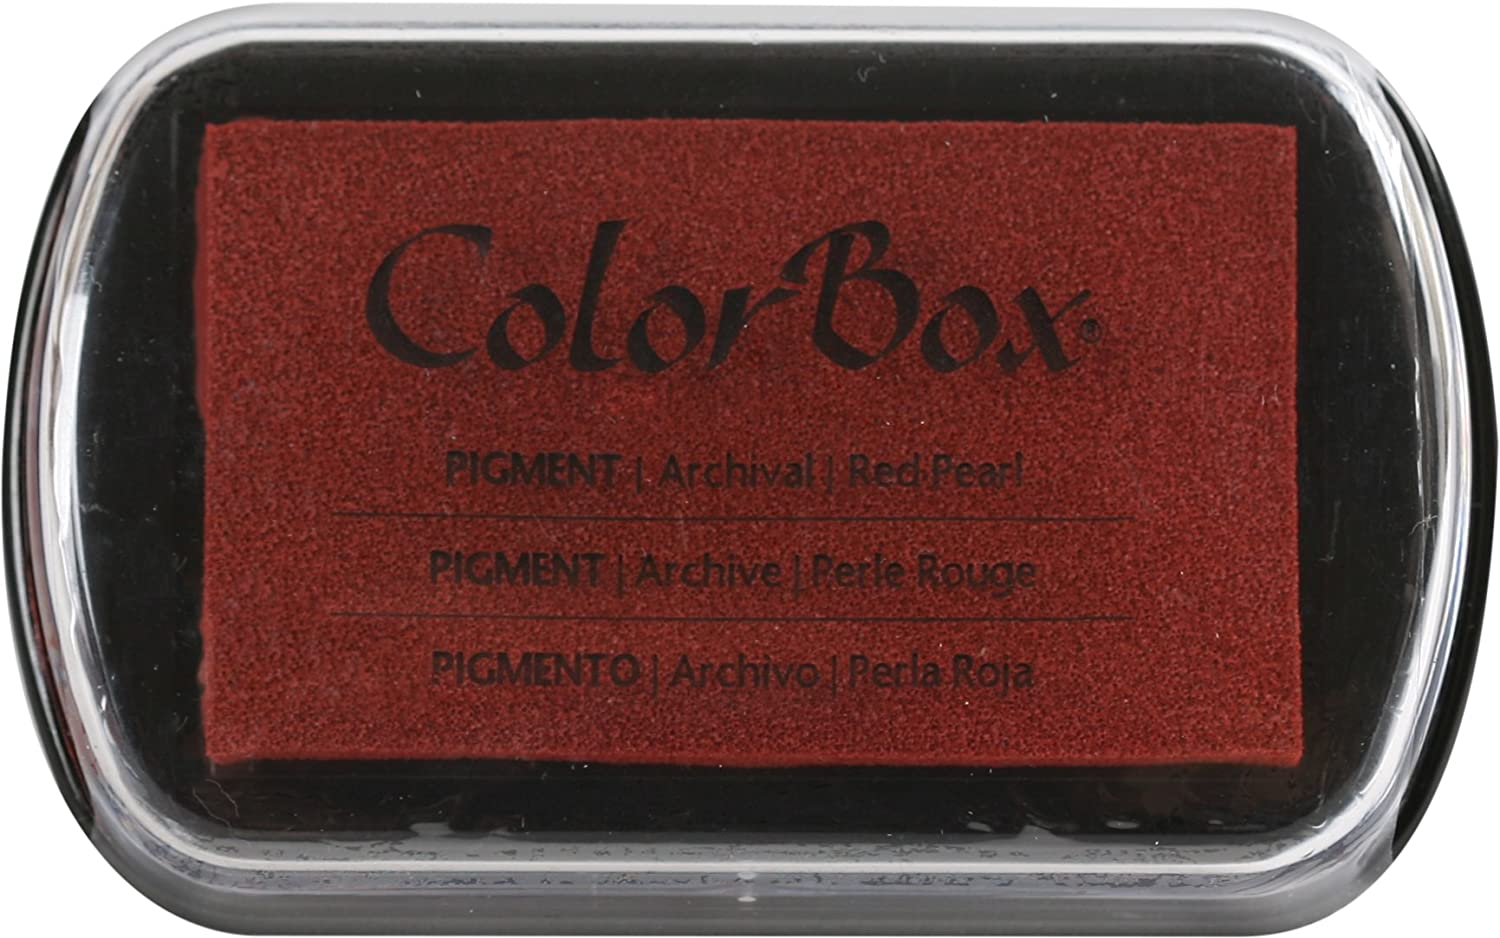 ColorBox Pigment Metallic inkpad 4 2.5-inch Ink Pad, Red Pearl, 4